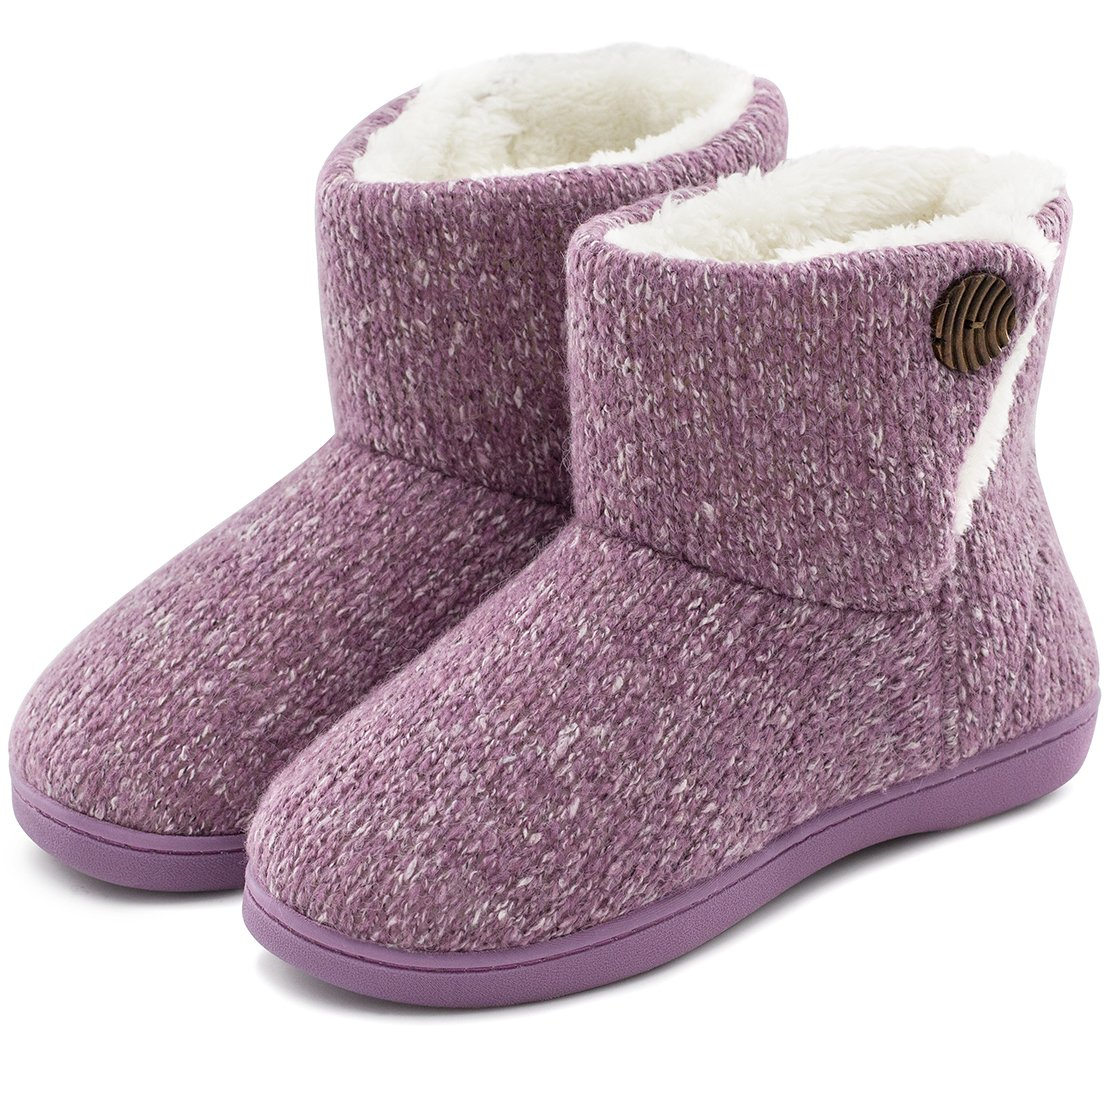 Women's Comfort Woolen Yarn Woven Bootie Slippers Memory Foam Plush Lining Slip-on House Shoes w/Anti-Slip Sole Indoor, Outdoor (Medium / 7-8 B(M) US, Purple)